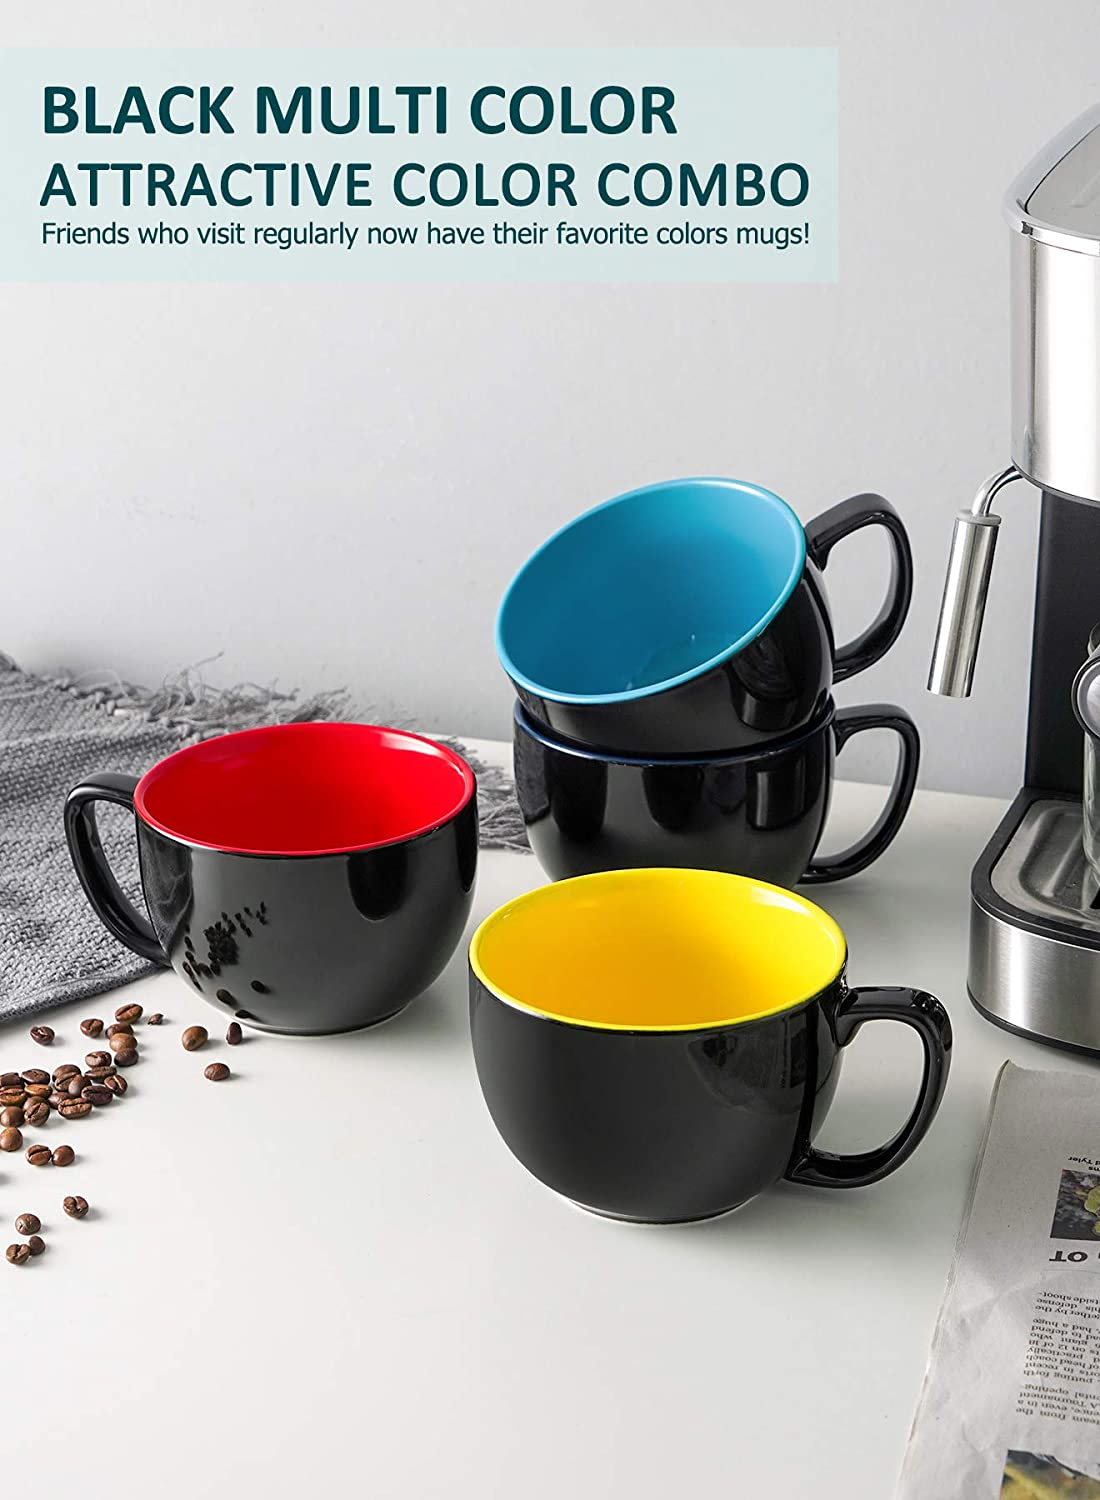 Tea or Water Smooth Ceramic with Modern Design Milk Black Multi Color Porcelain Jumbo Coffee Mugs Set of 4-16 Ounce Cups with Handle for Hot or Cold Drinks like Cocoa